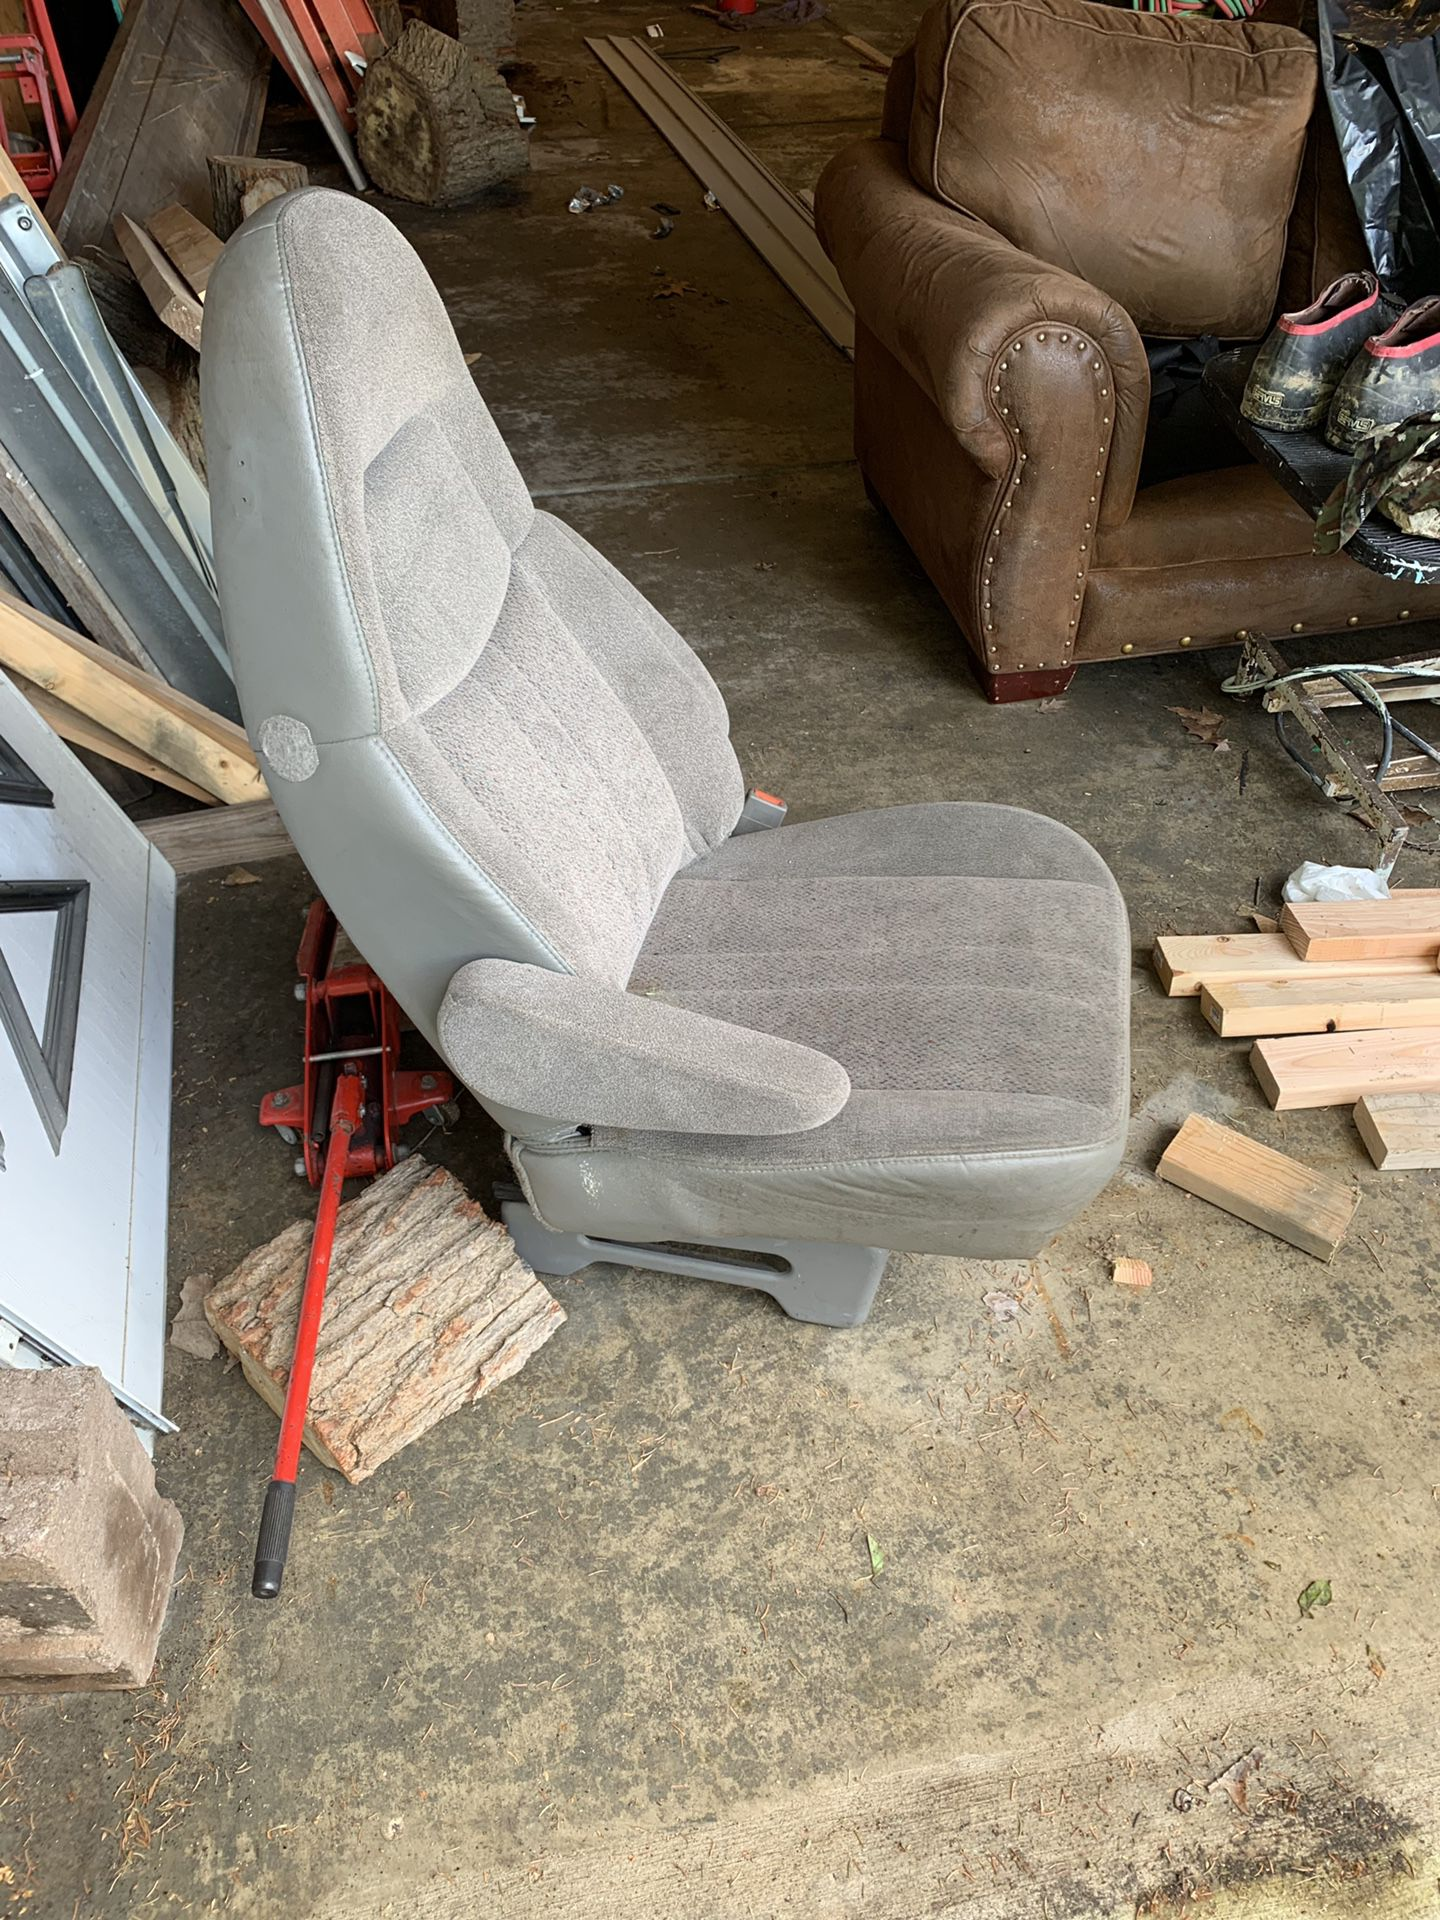 Rear seat to a 2000 Astro van in really good shape